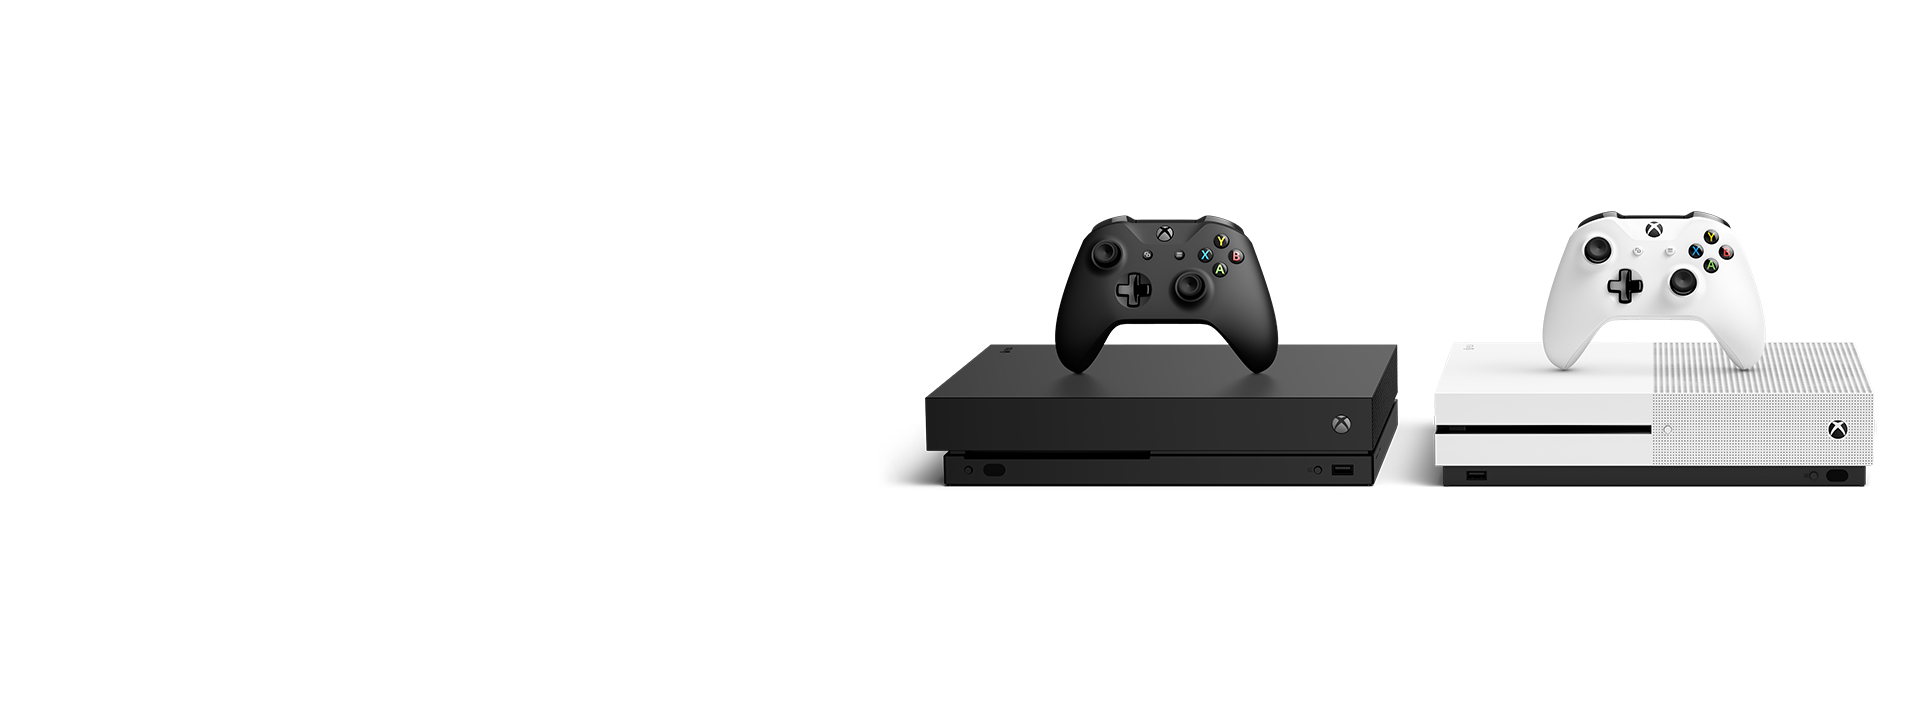 Save up to $100 on Xbox One Consoles